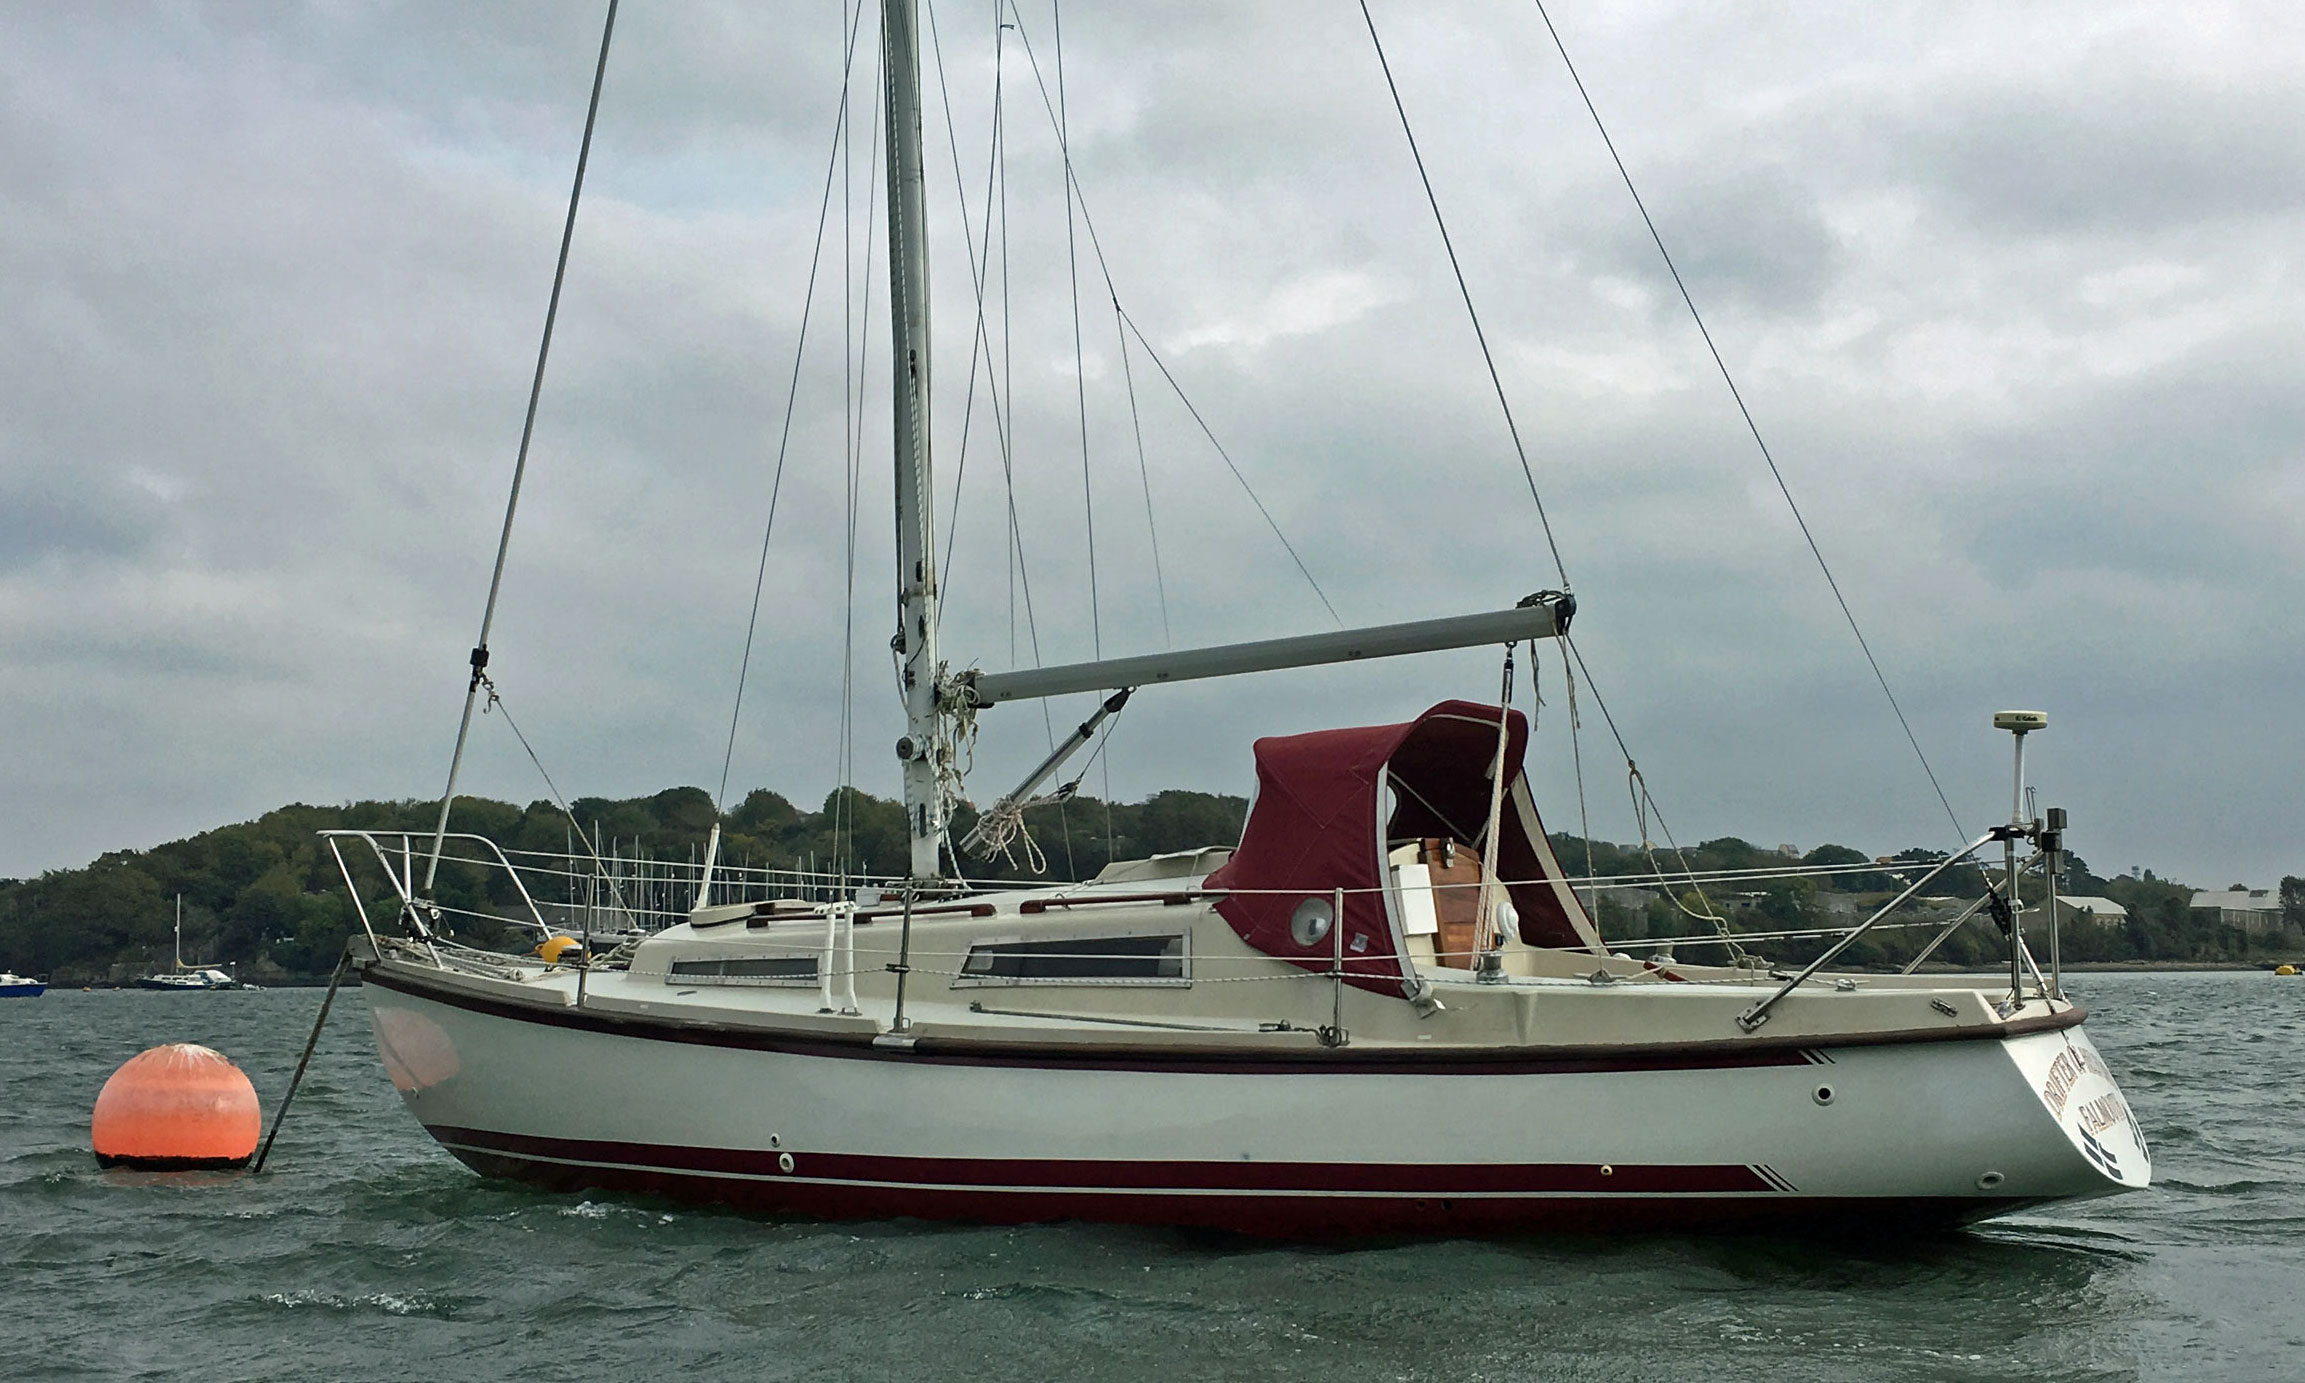 A moored Phillipa 27 sailboat